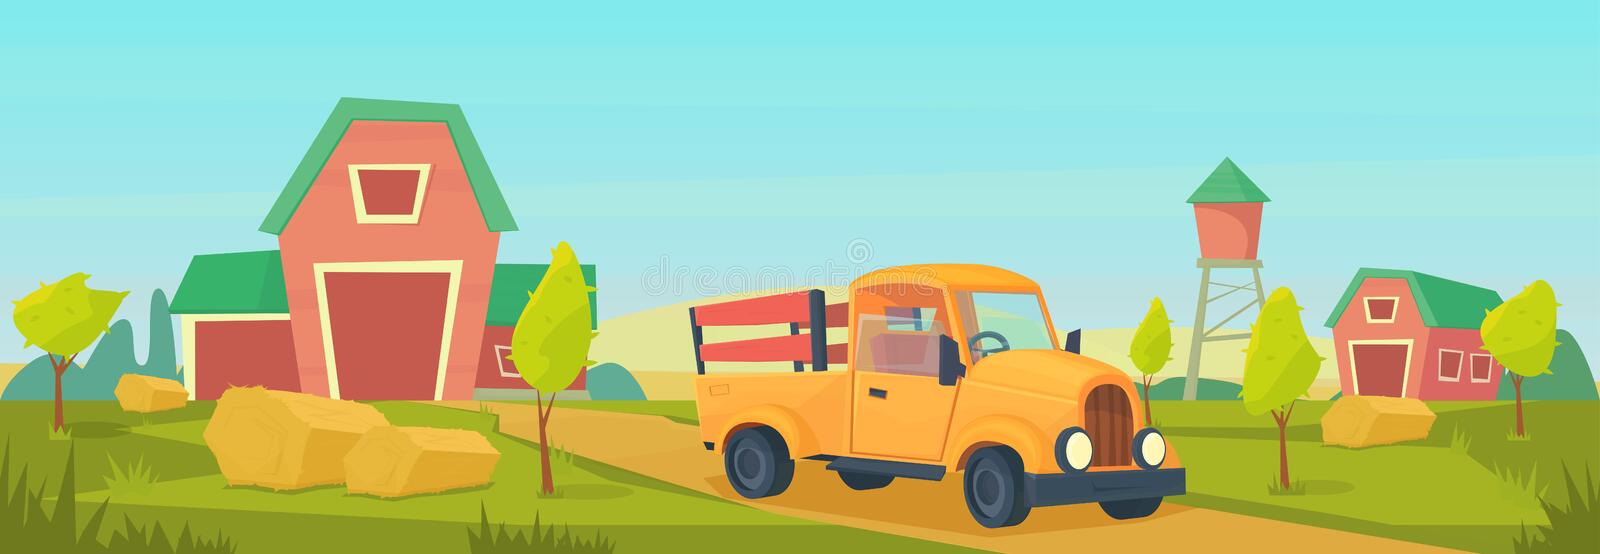 Agriculture. Farm rural landscape with orange truck, red barn, house and ranch, water tower and haystack. Vector flat illustration stock illustration